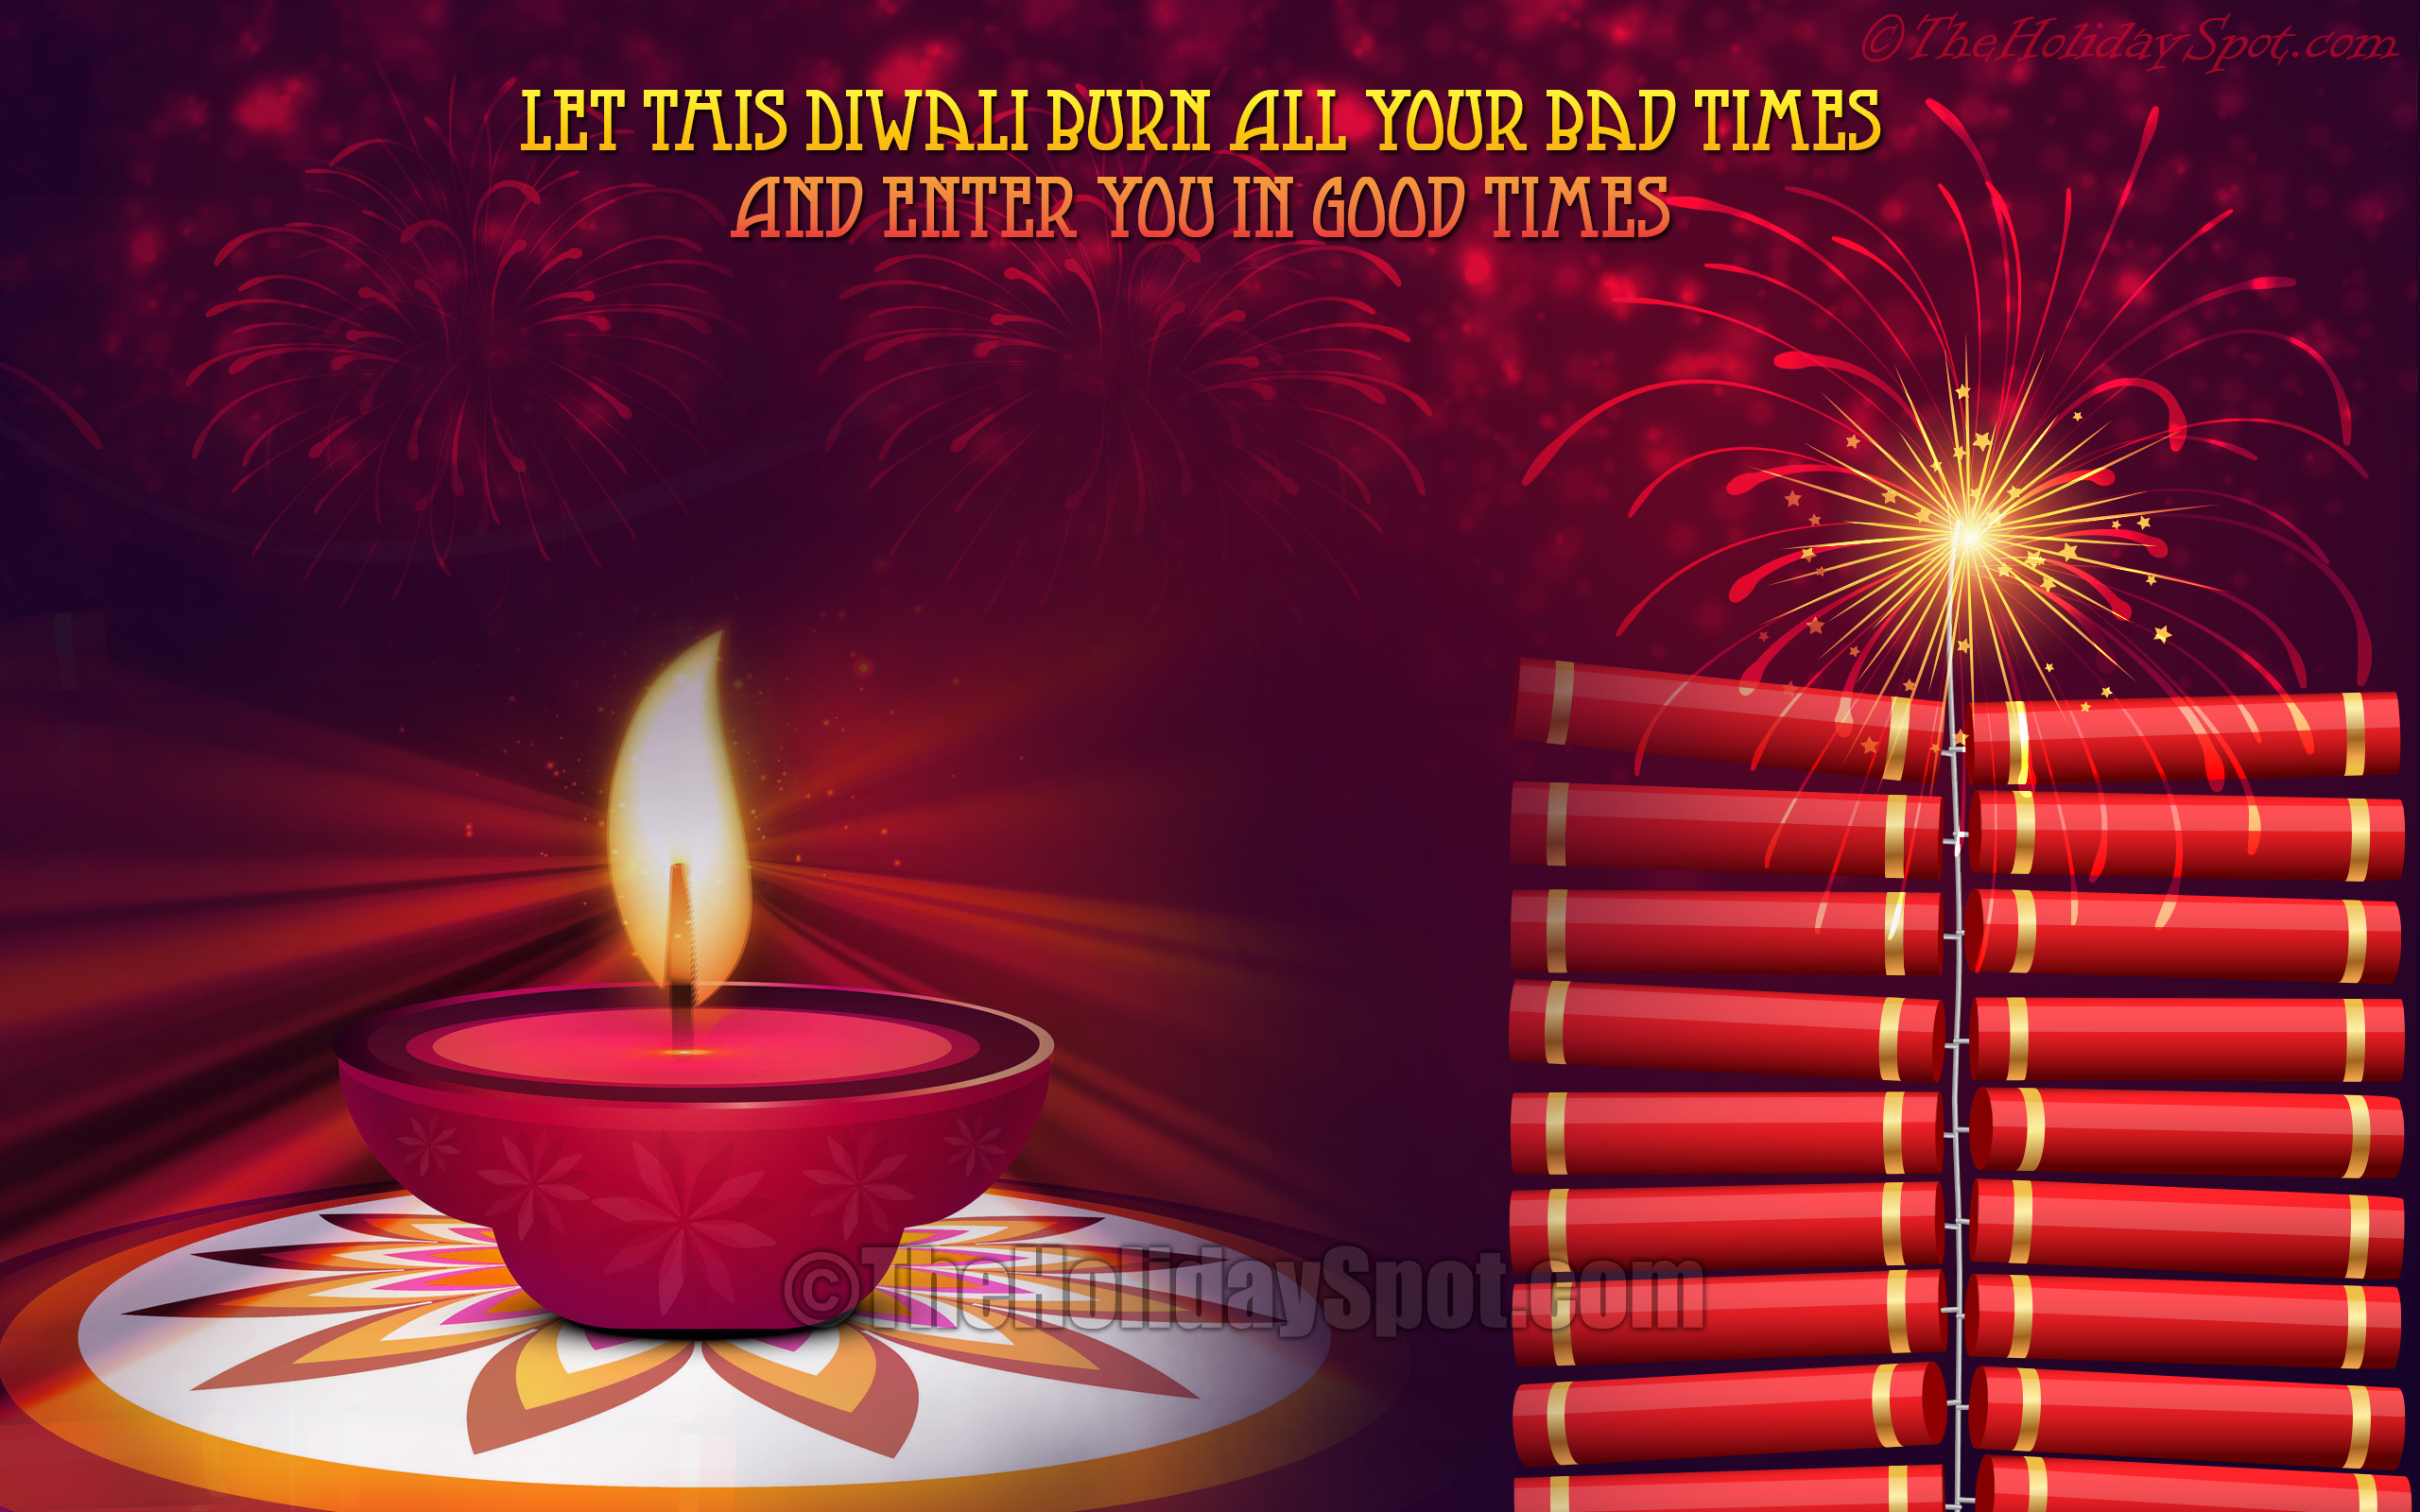 Wallpaper download diwali - Fire Crackers And Diya Wallpaper For Diwali New